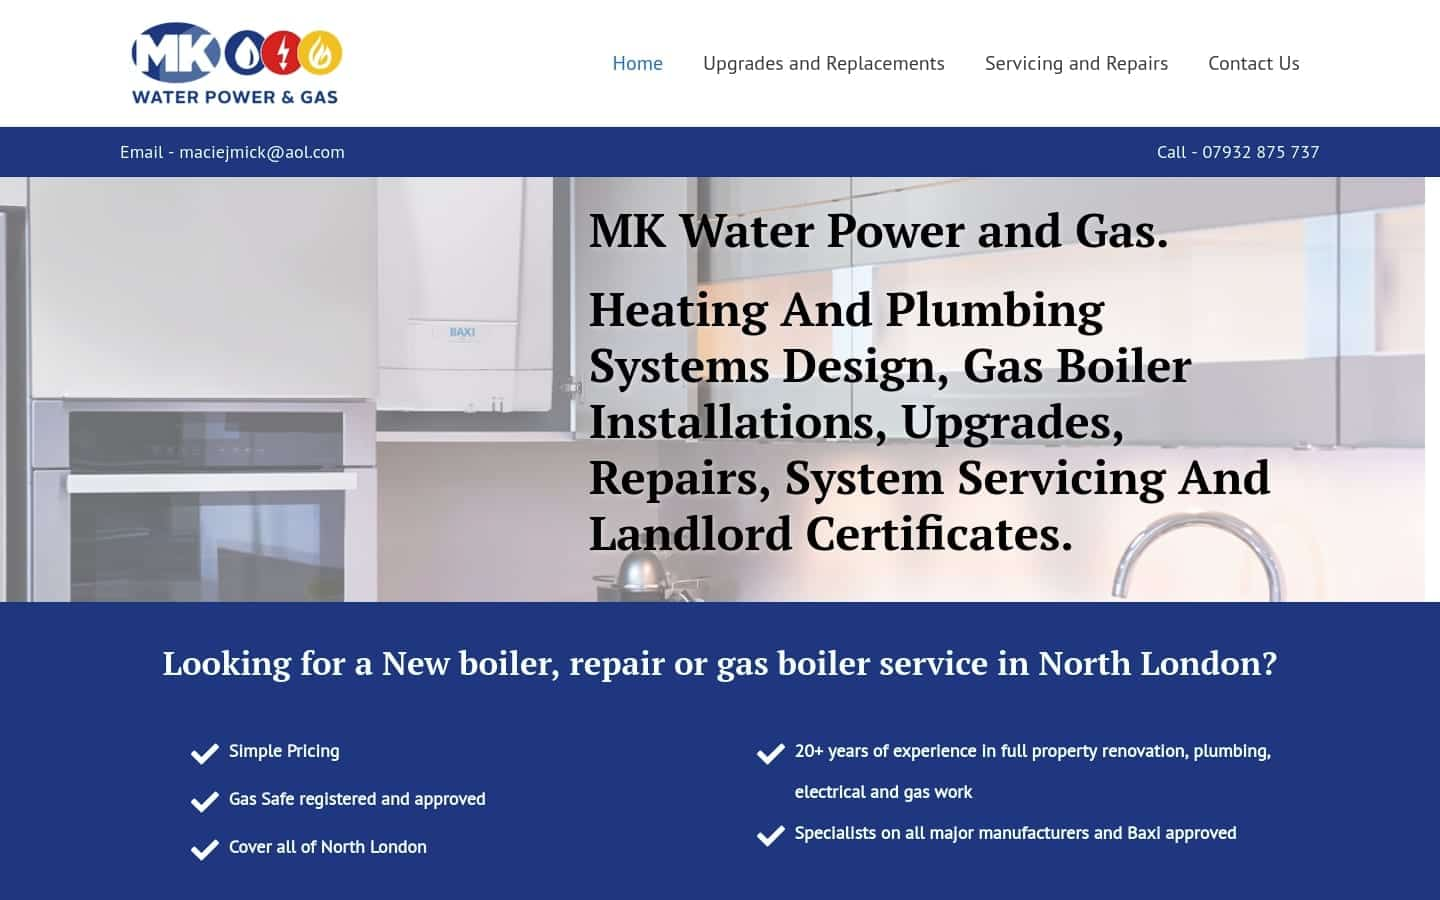 MK Water Powr and Gas Website - Desktop